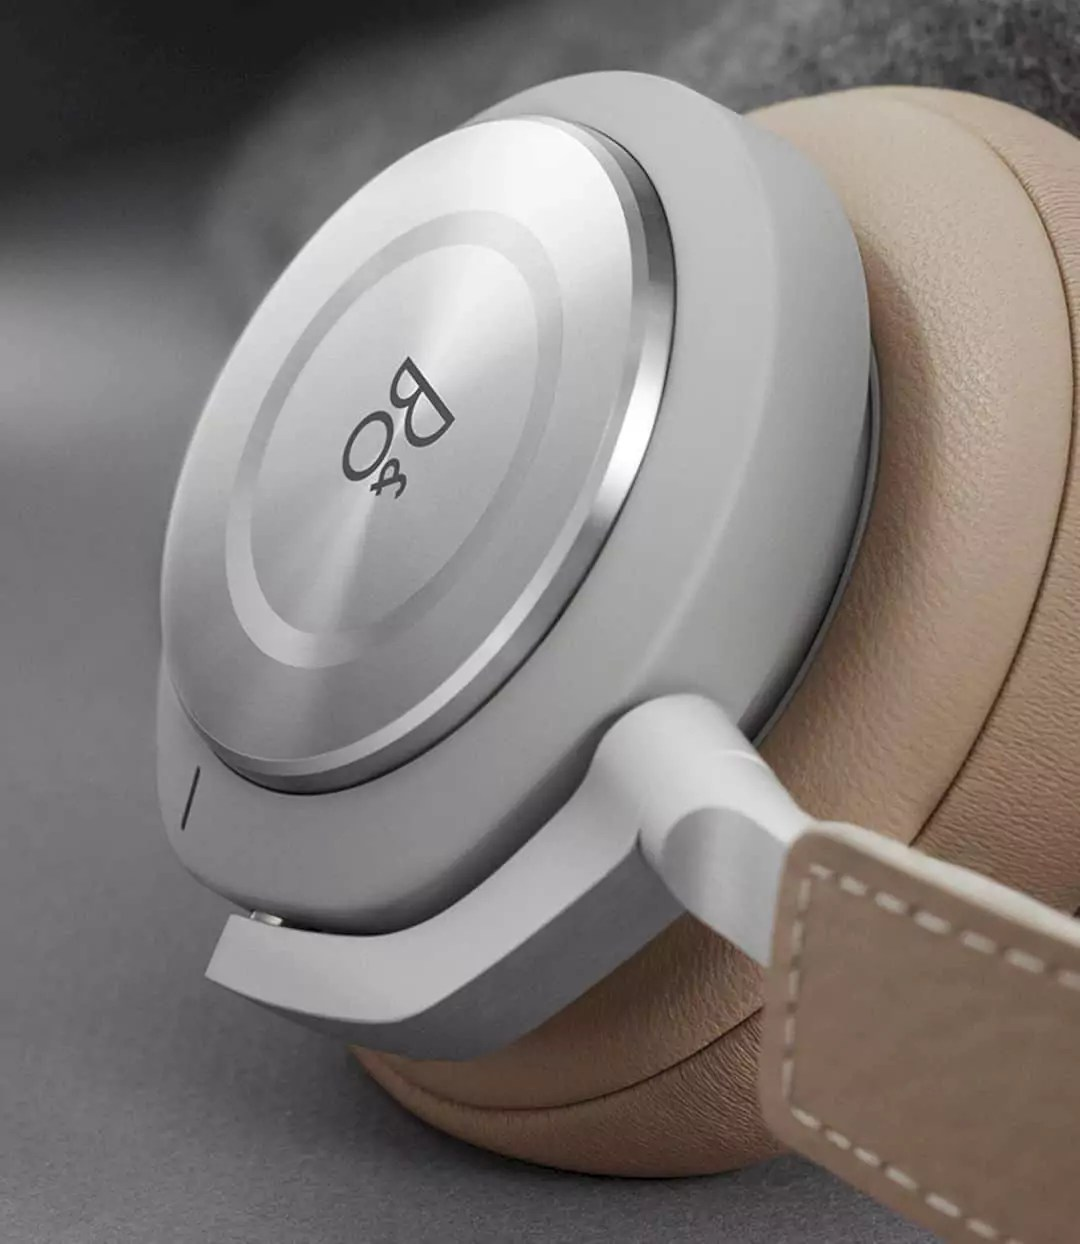 Beoplay H9i: The All Innovative Product from Bang & Olufsen Signature Sound